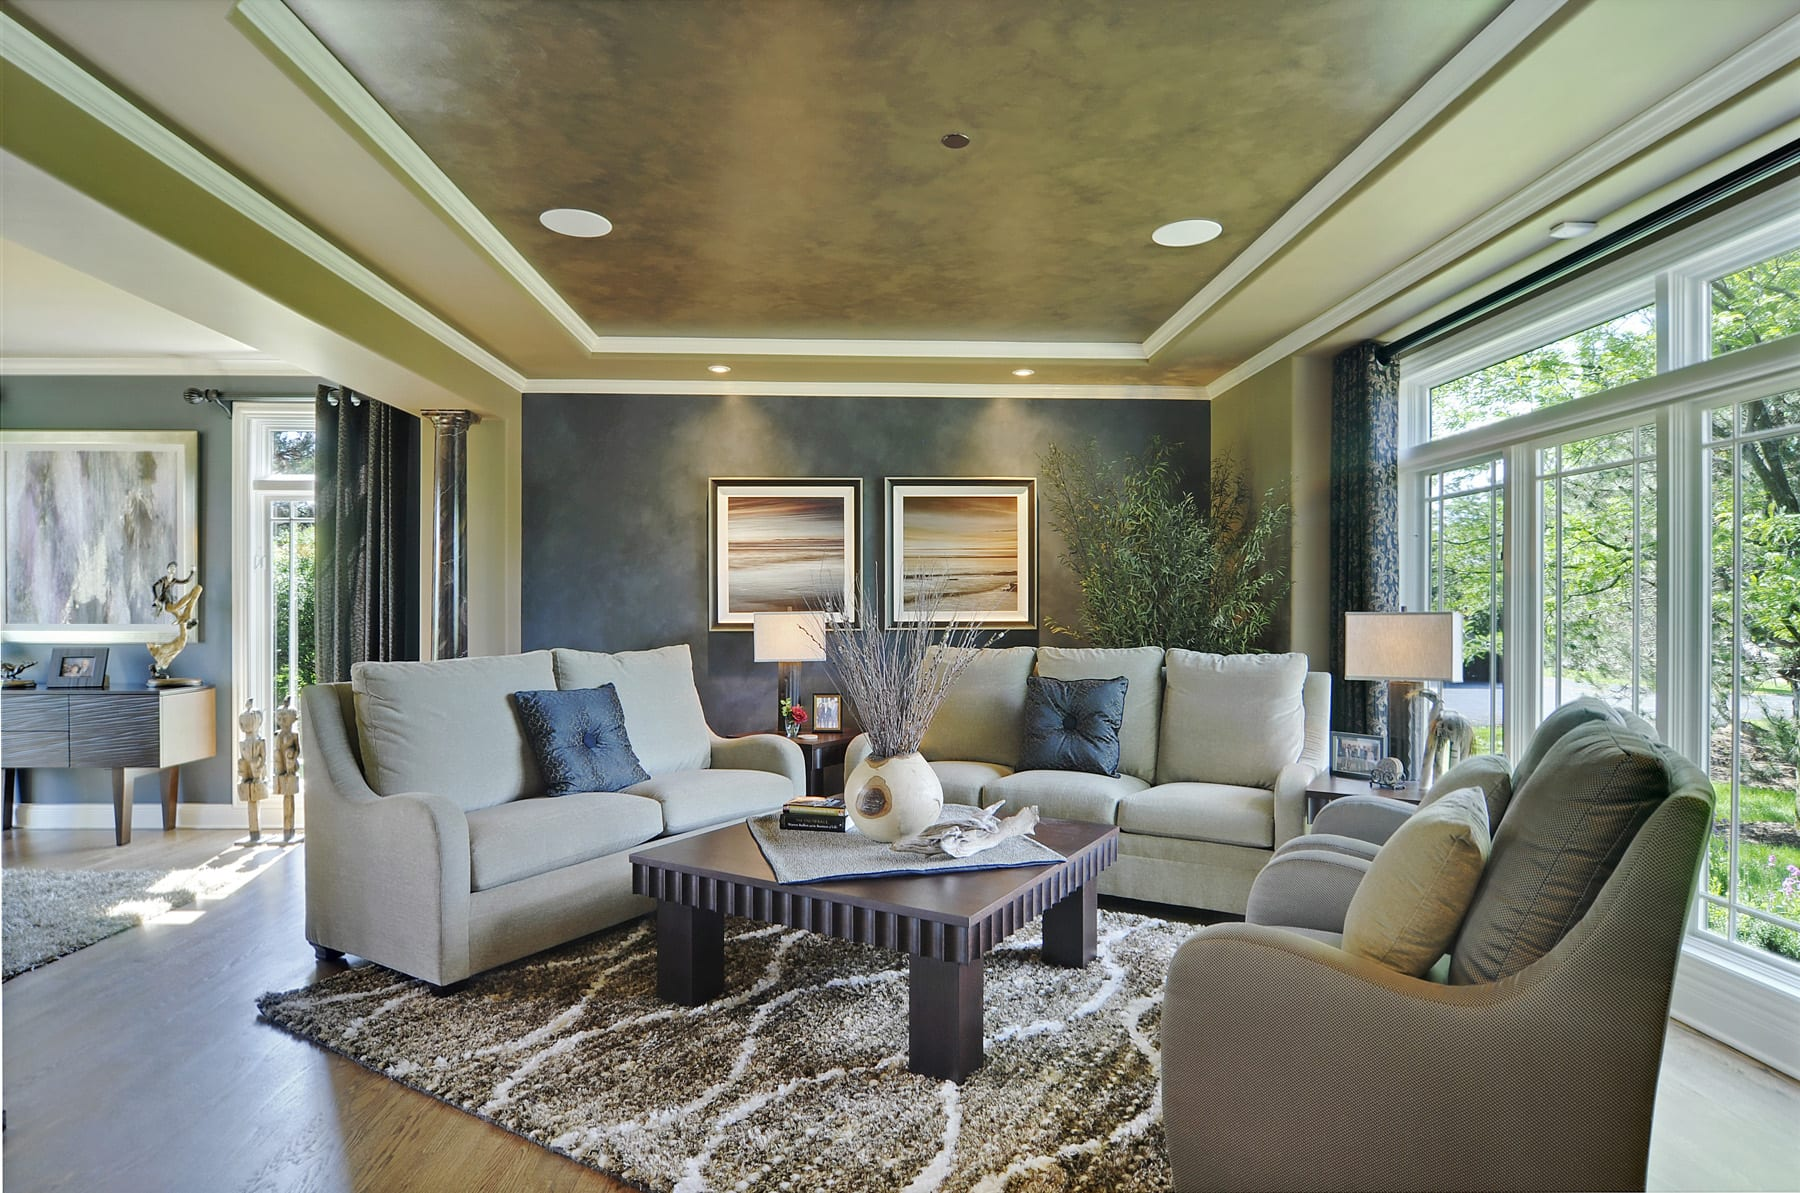 this living room project began with an interior design consultation the design plan included a